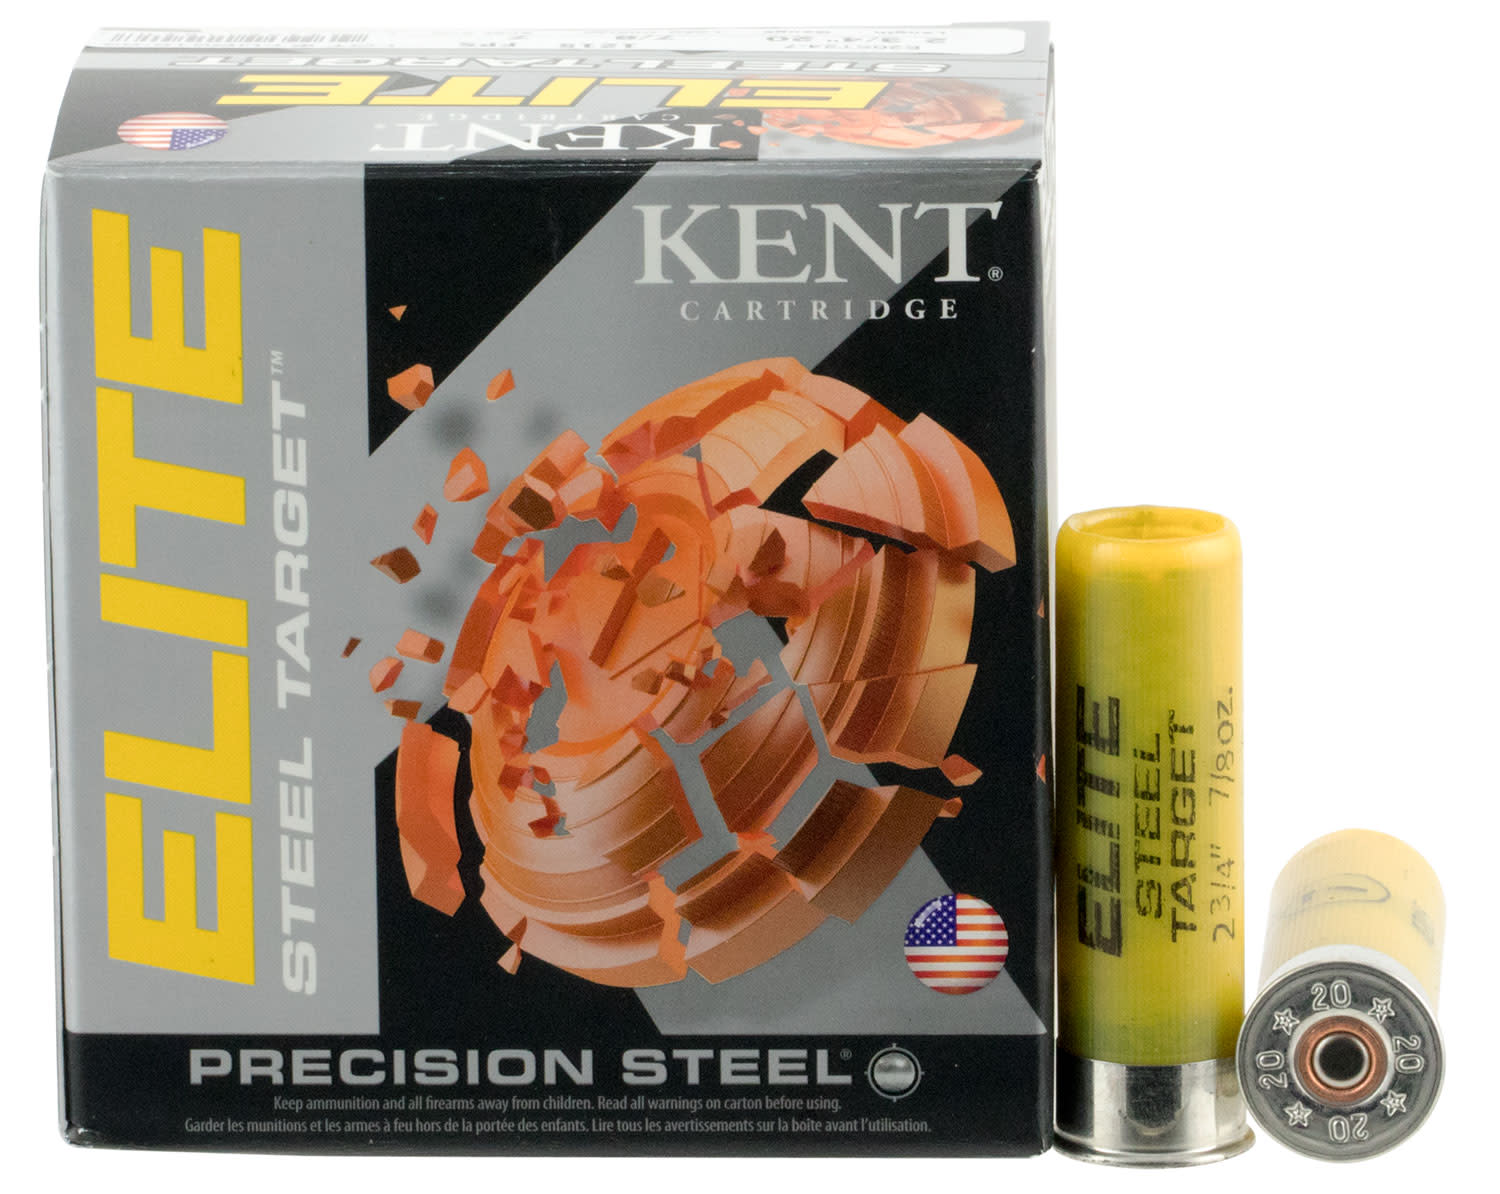 Kent Cartridge Elite Target Load 20 Gauge 2-3/4